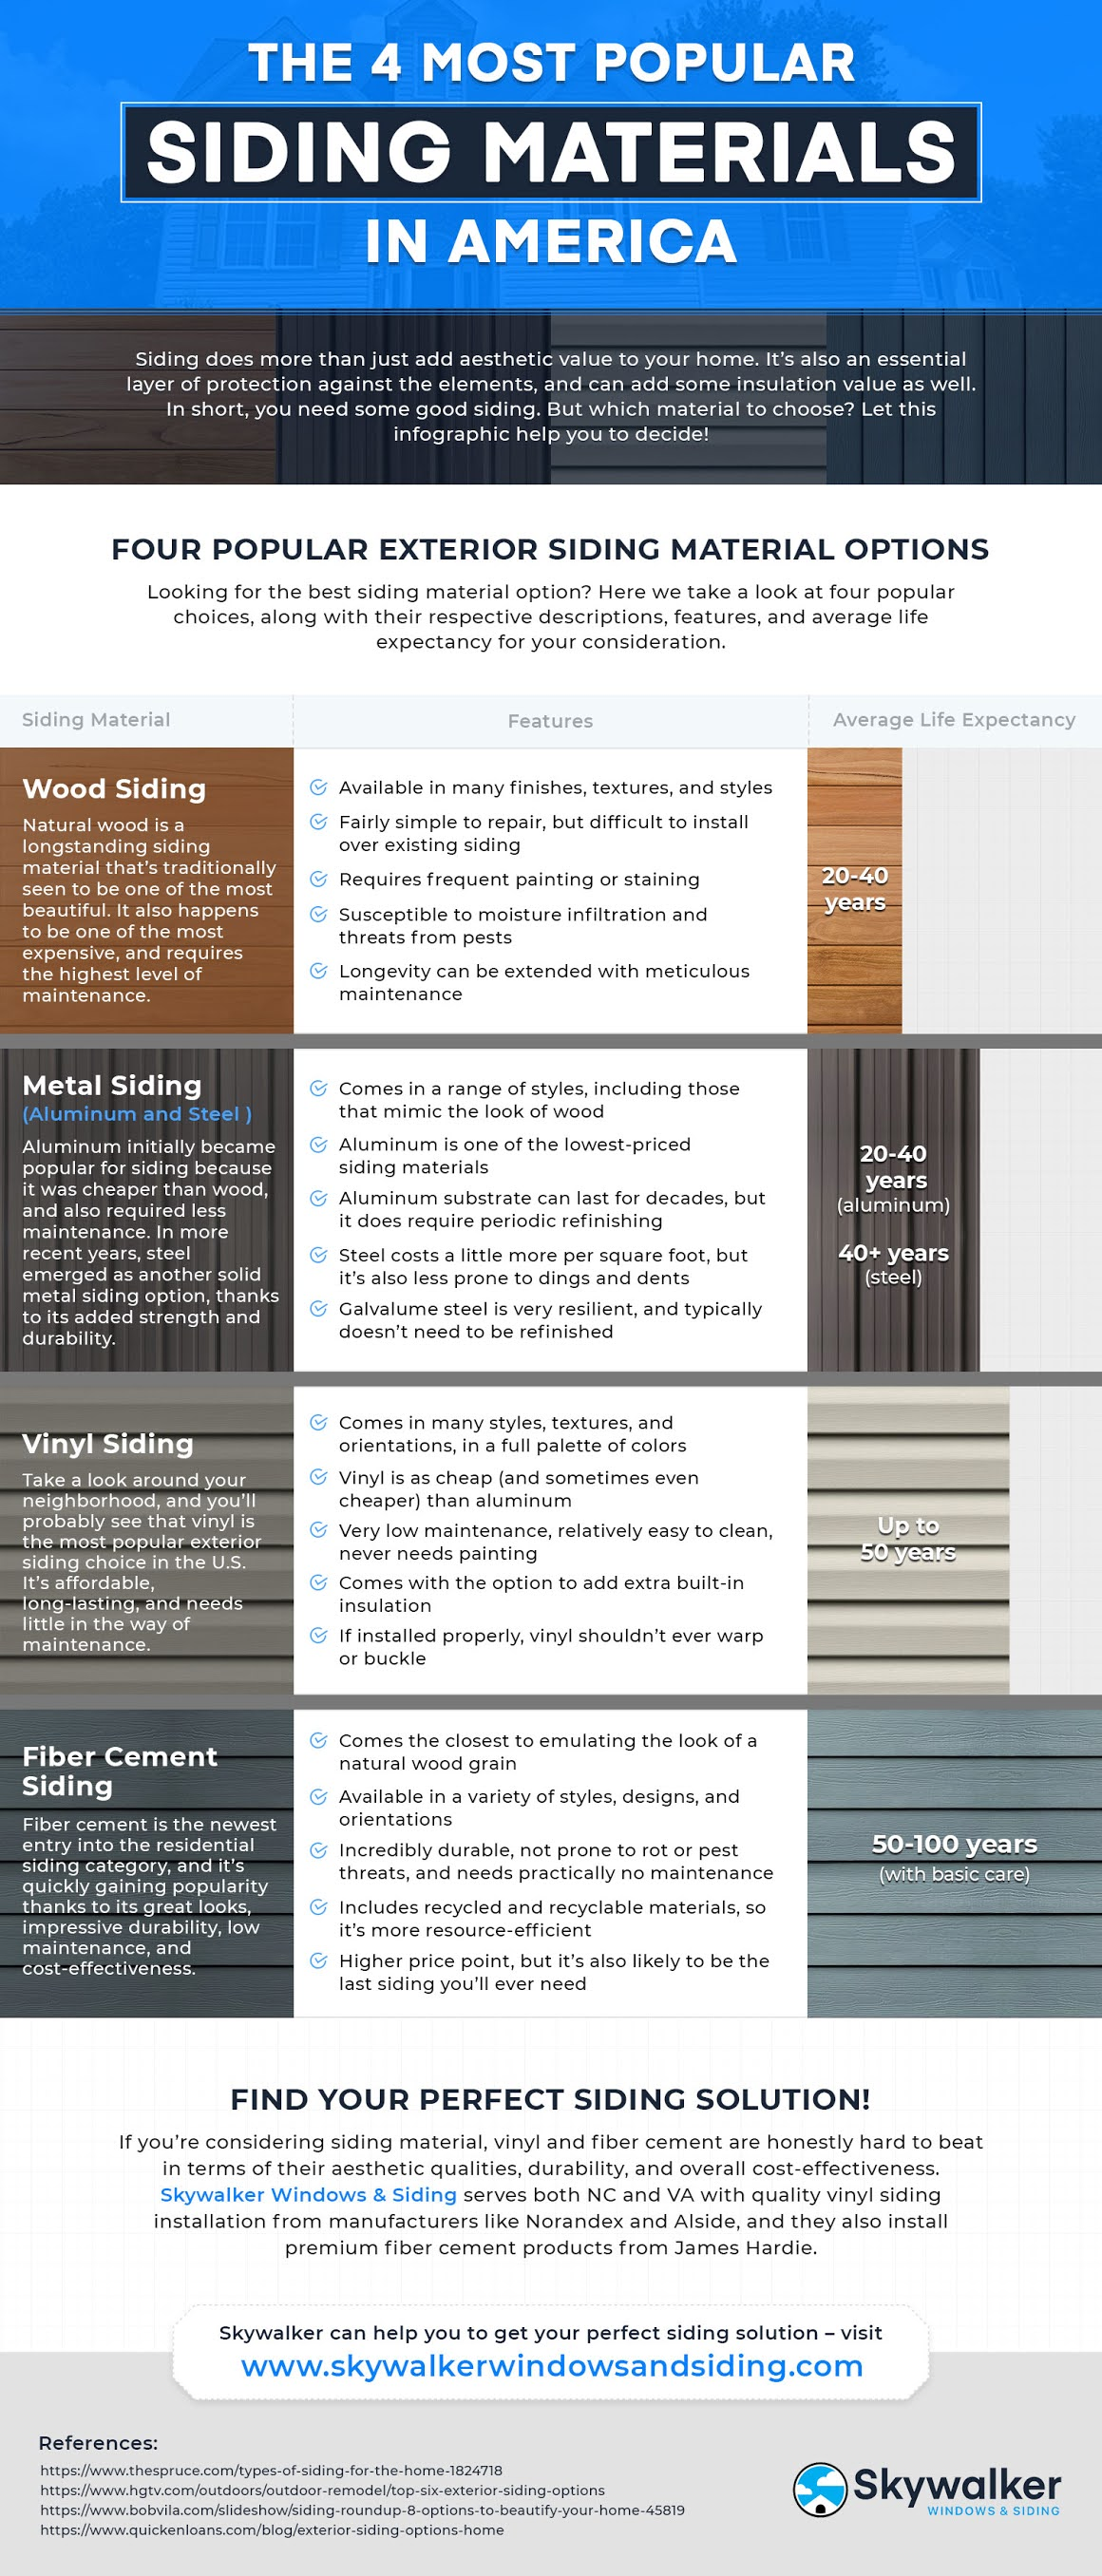 The 4 Most Popular Siding Materials in America #infographic #3D Estimator #Technology in metal building #Metal Buildings